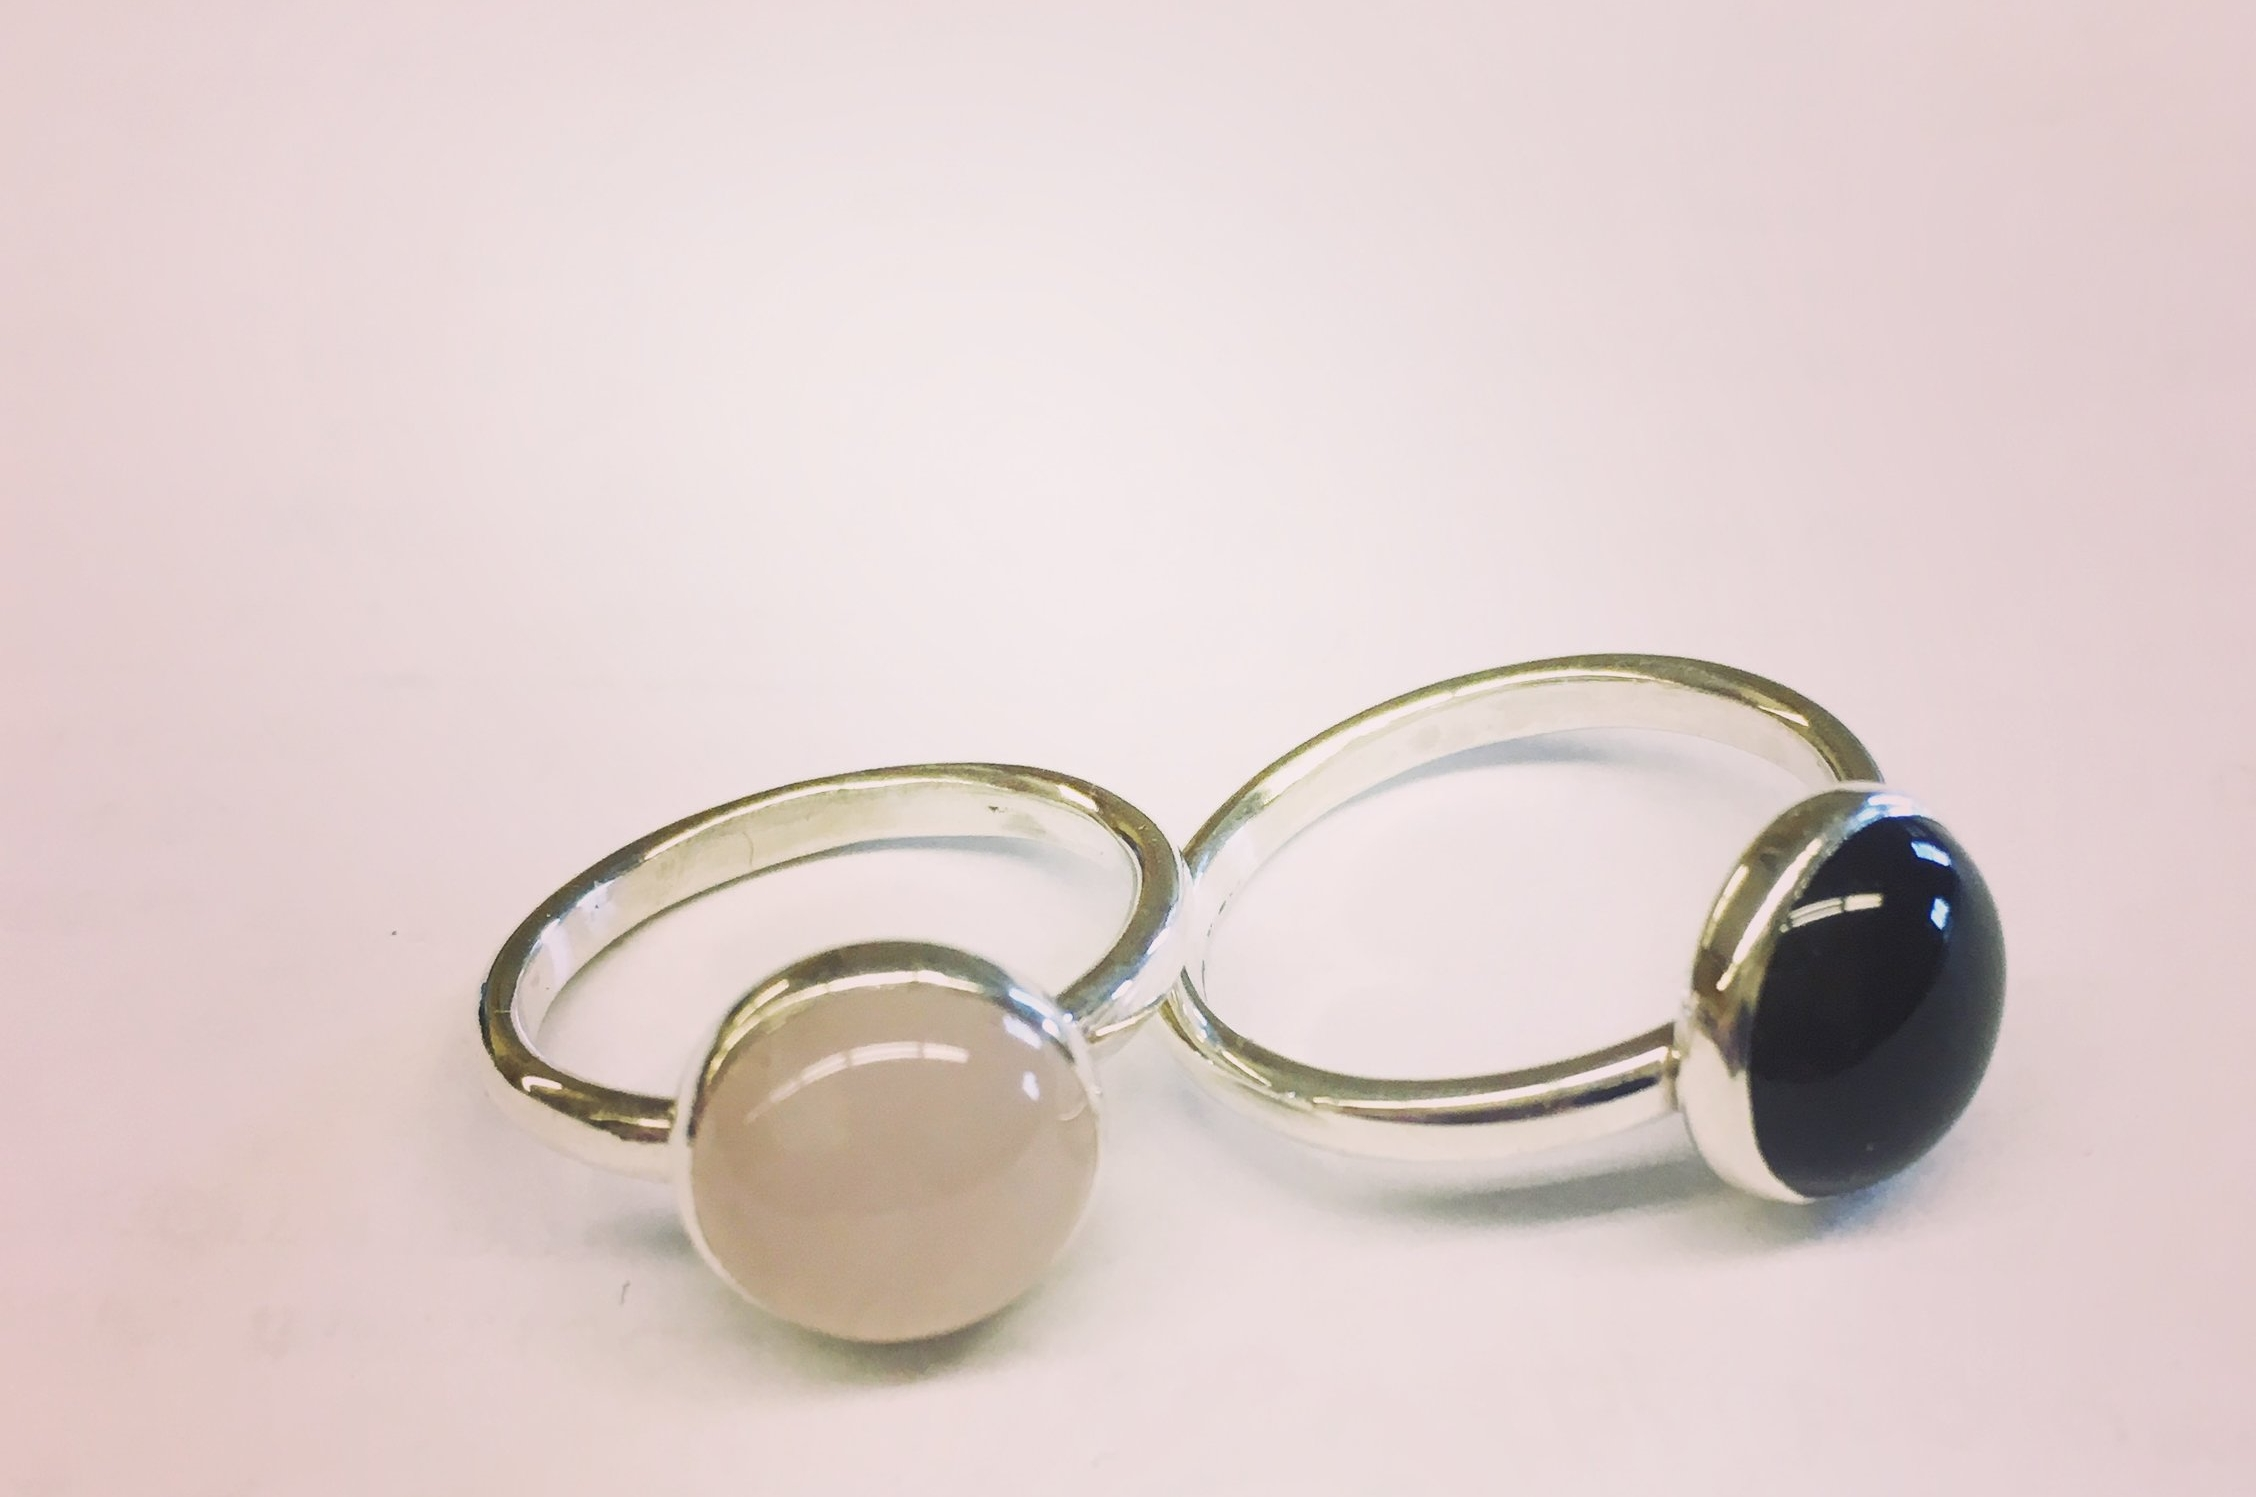 Rose quartz and black onyx set in sterling silver.